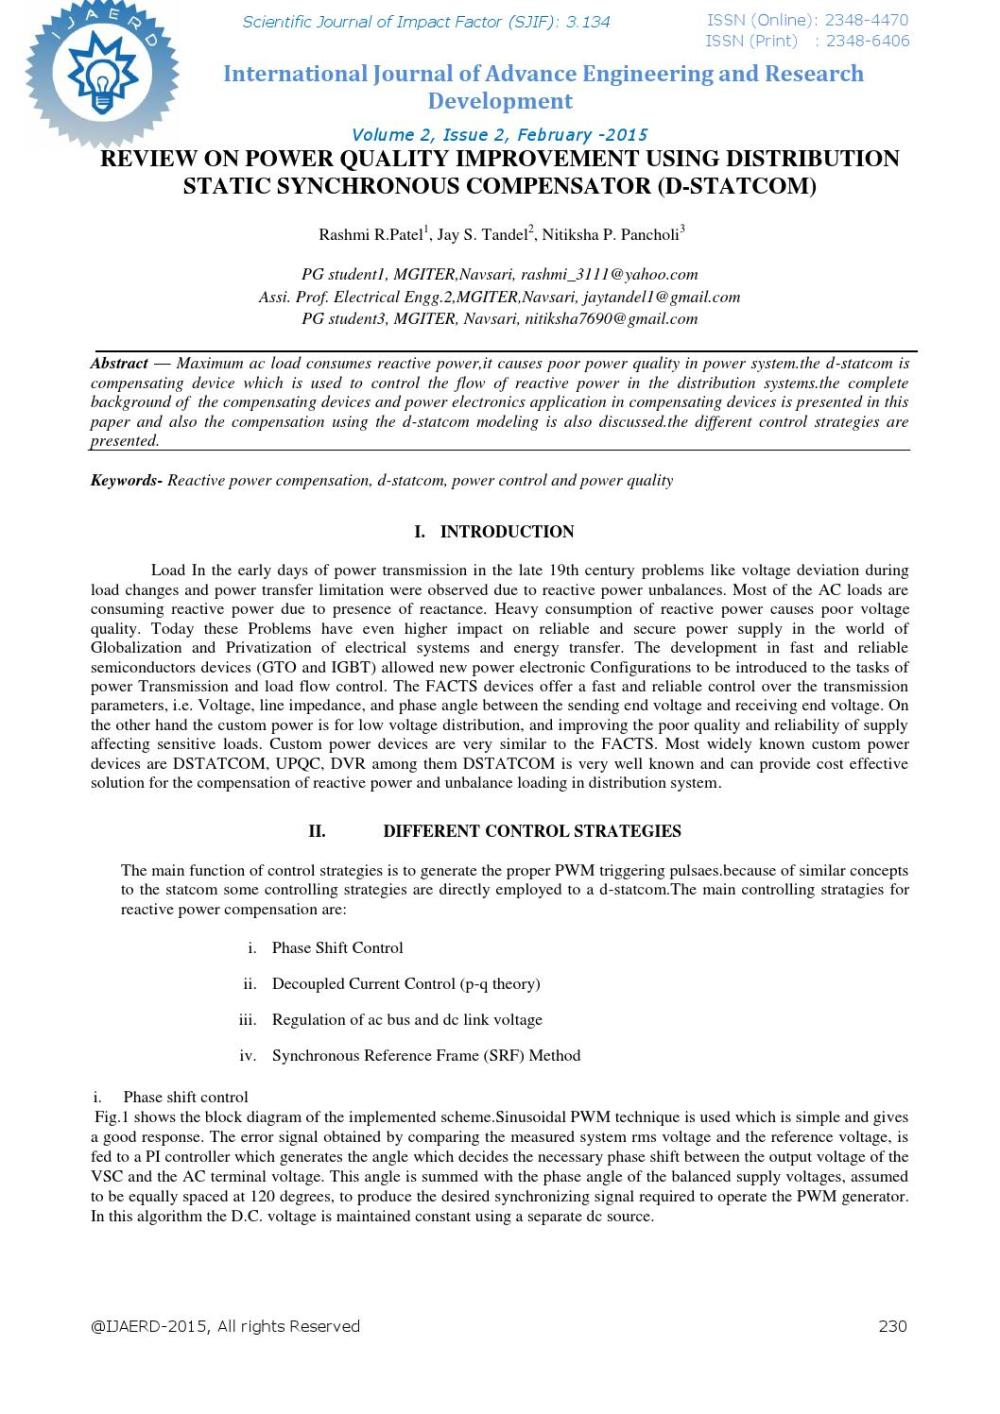 medium resolution of review on power quality improvement using distribution static synchronous compensator d statcom 16 by editor ijaerd issuu